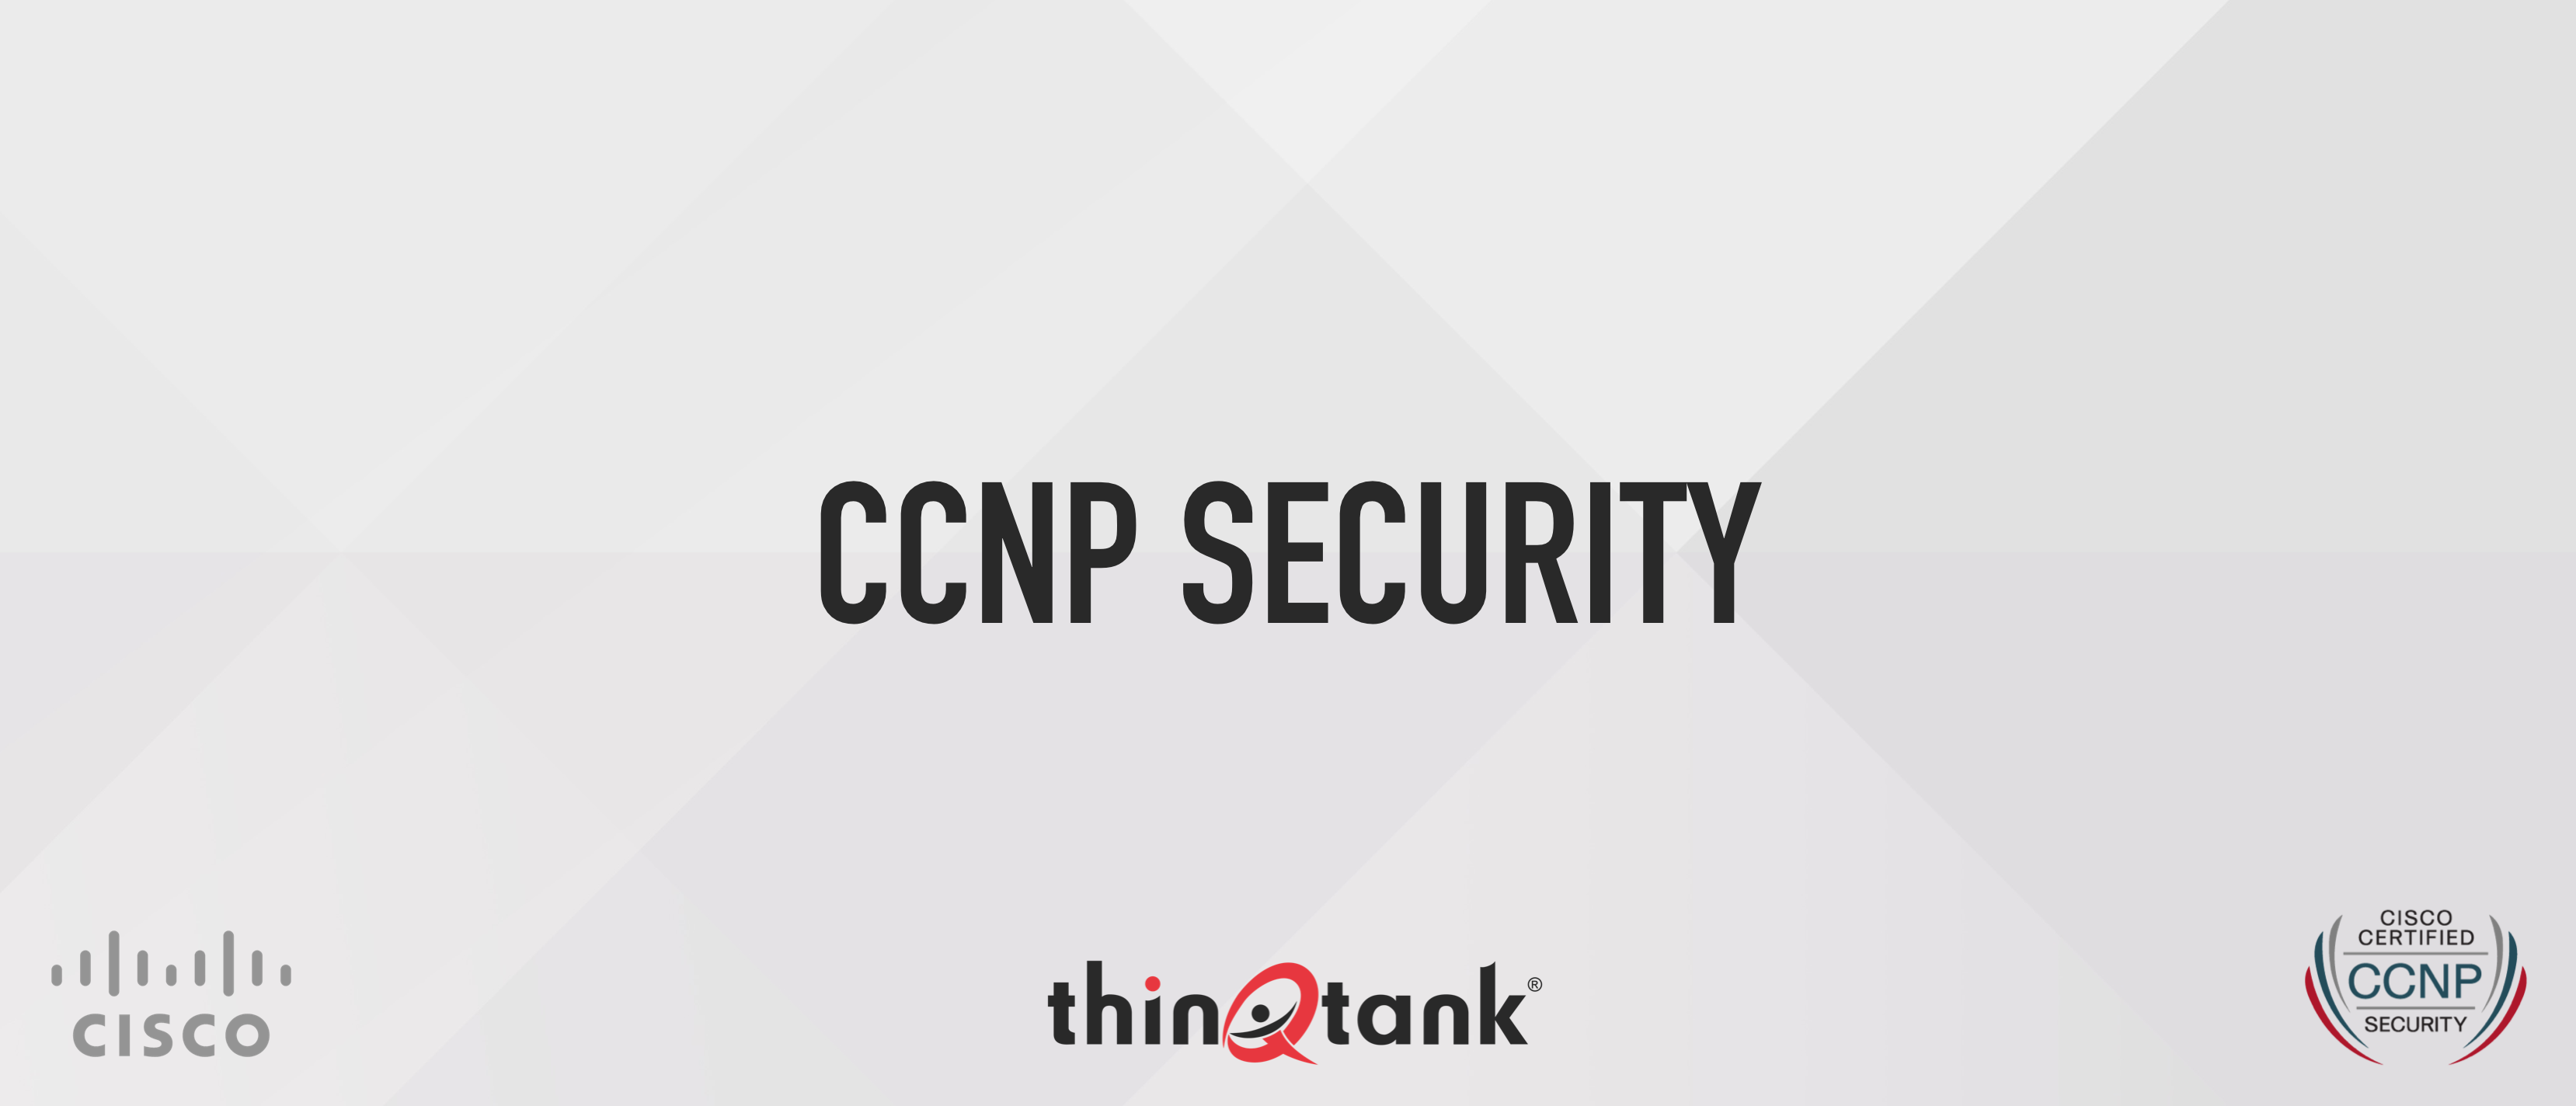 Thinqtank Training And Certification Courses Thinqtank Learning